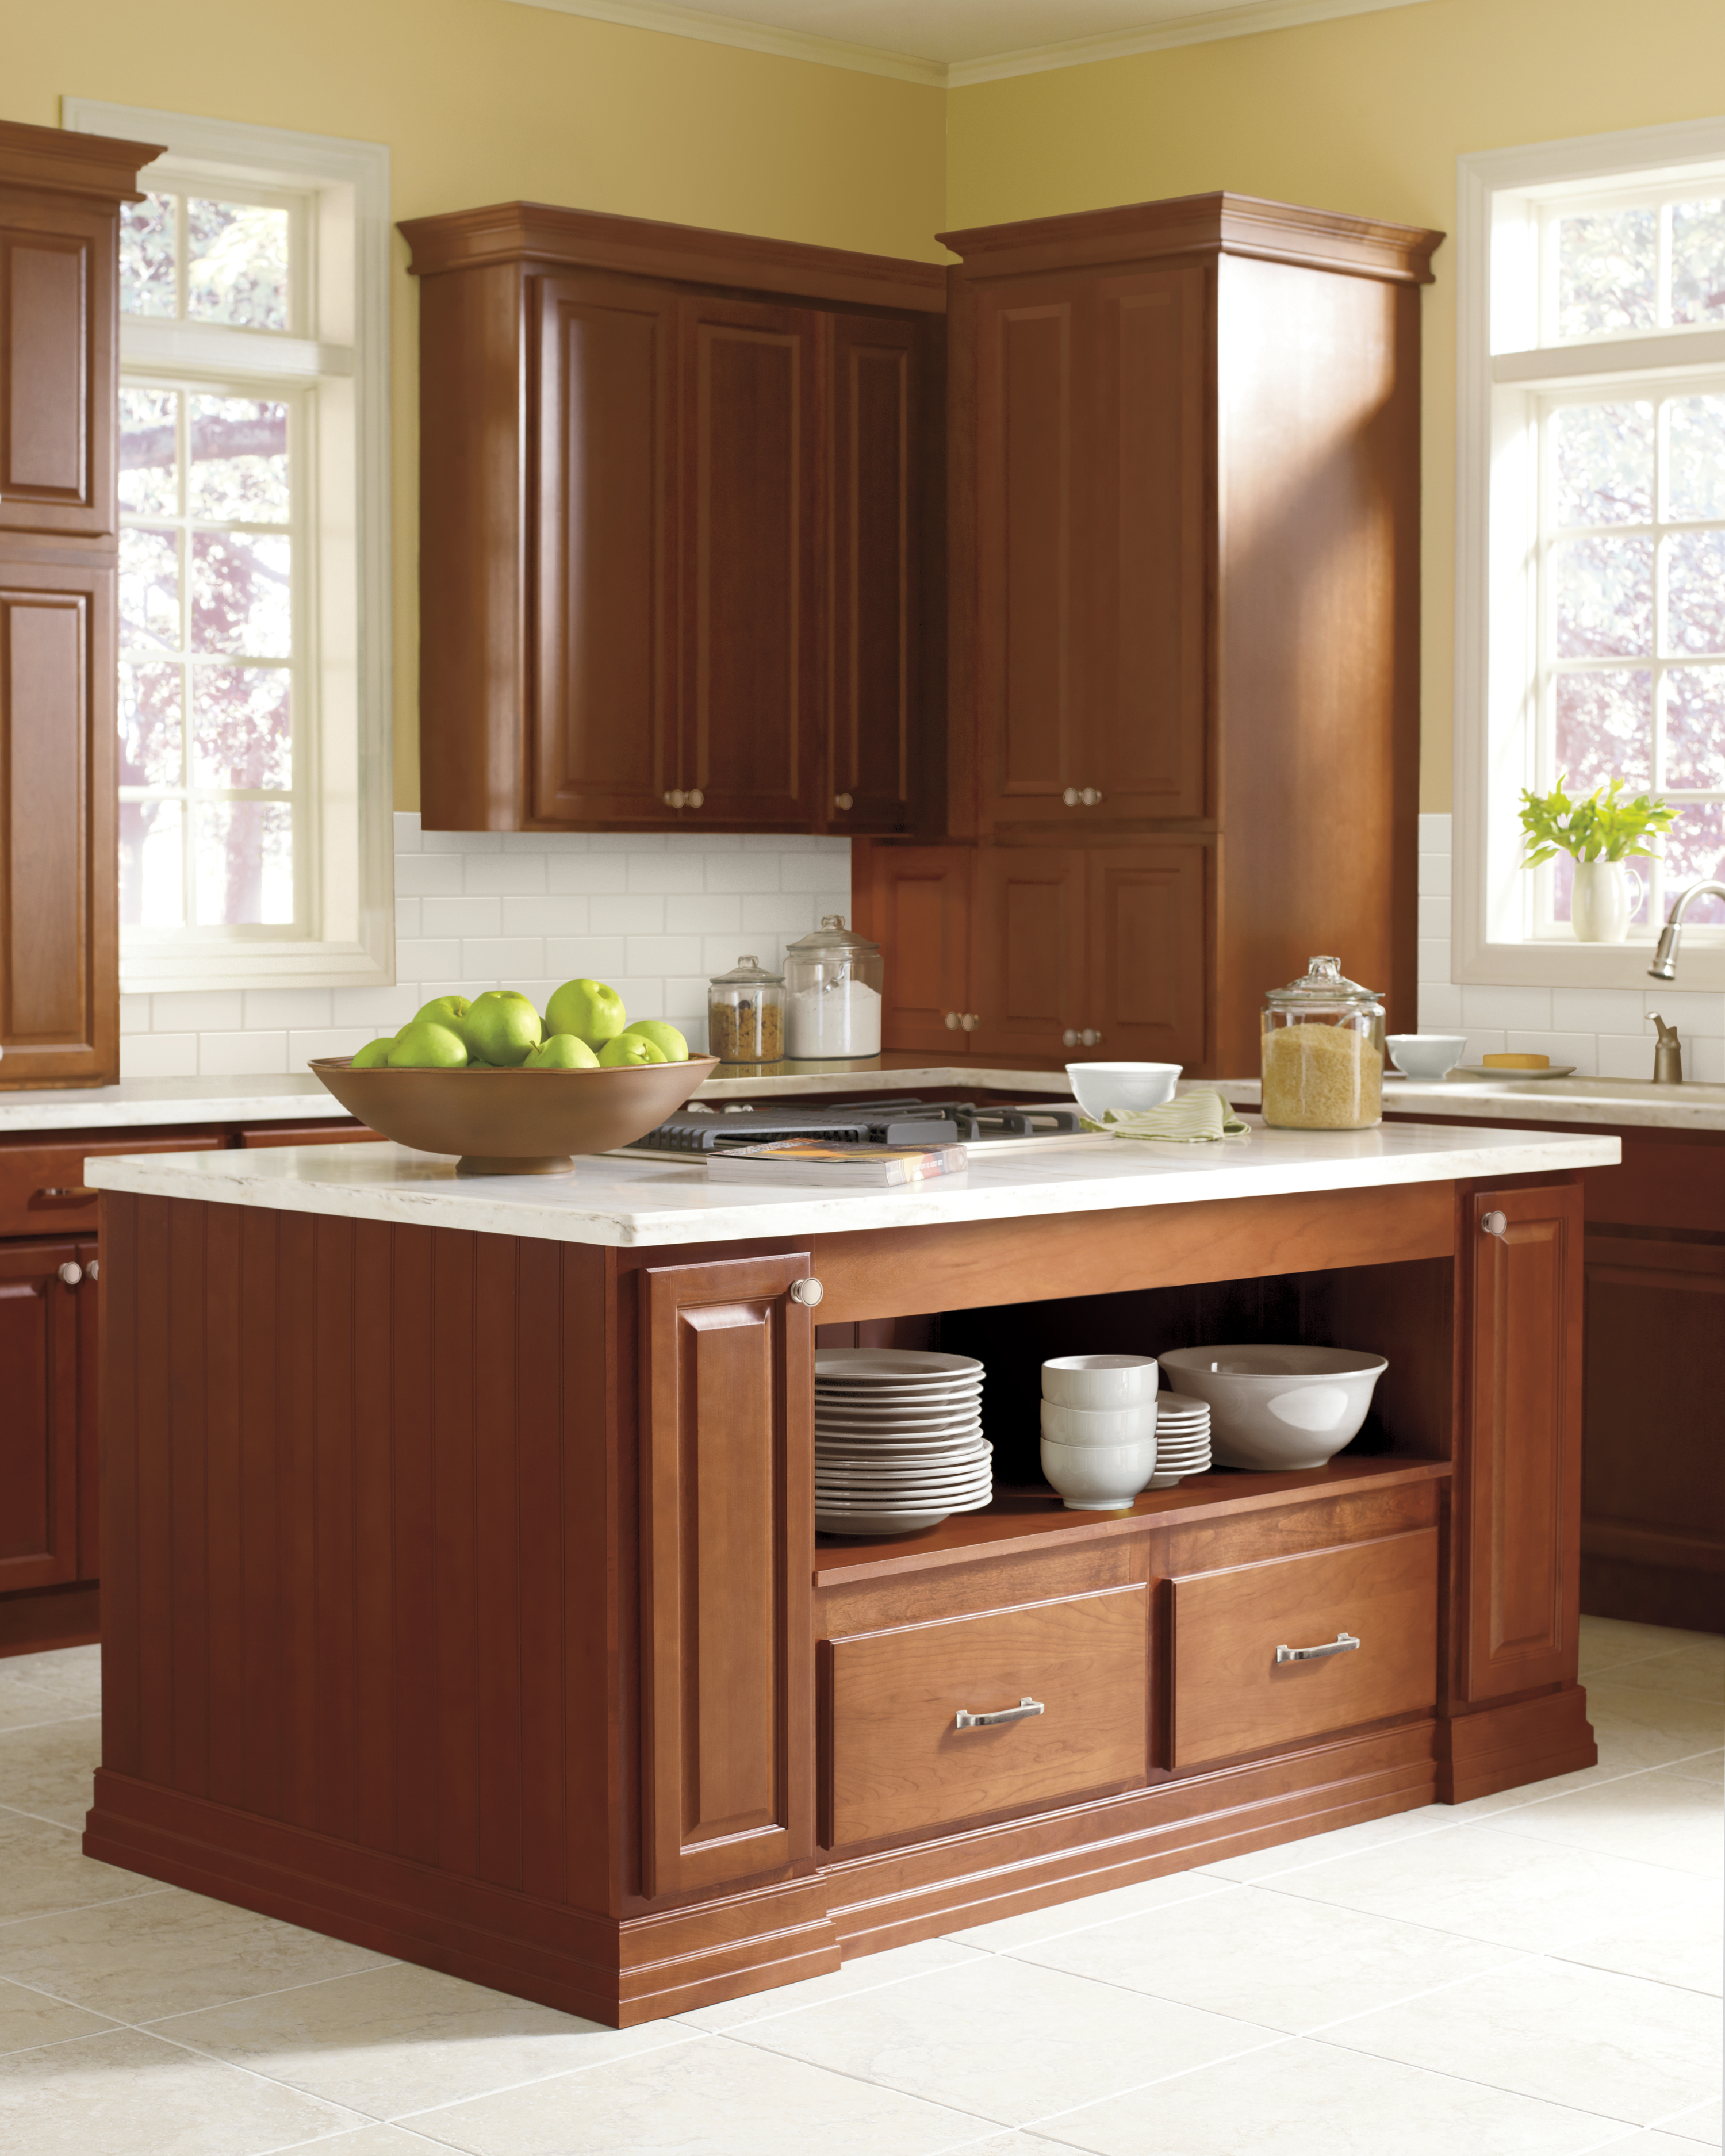 Martha Stewart Kitchen Cabinet Reviews: How To Seriously Deep Clean Your Kitchen Cabinets